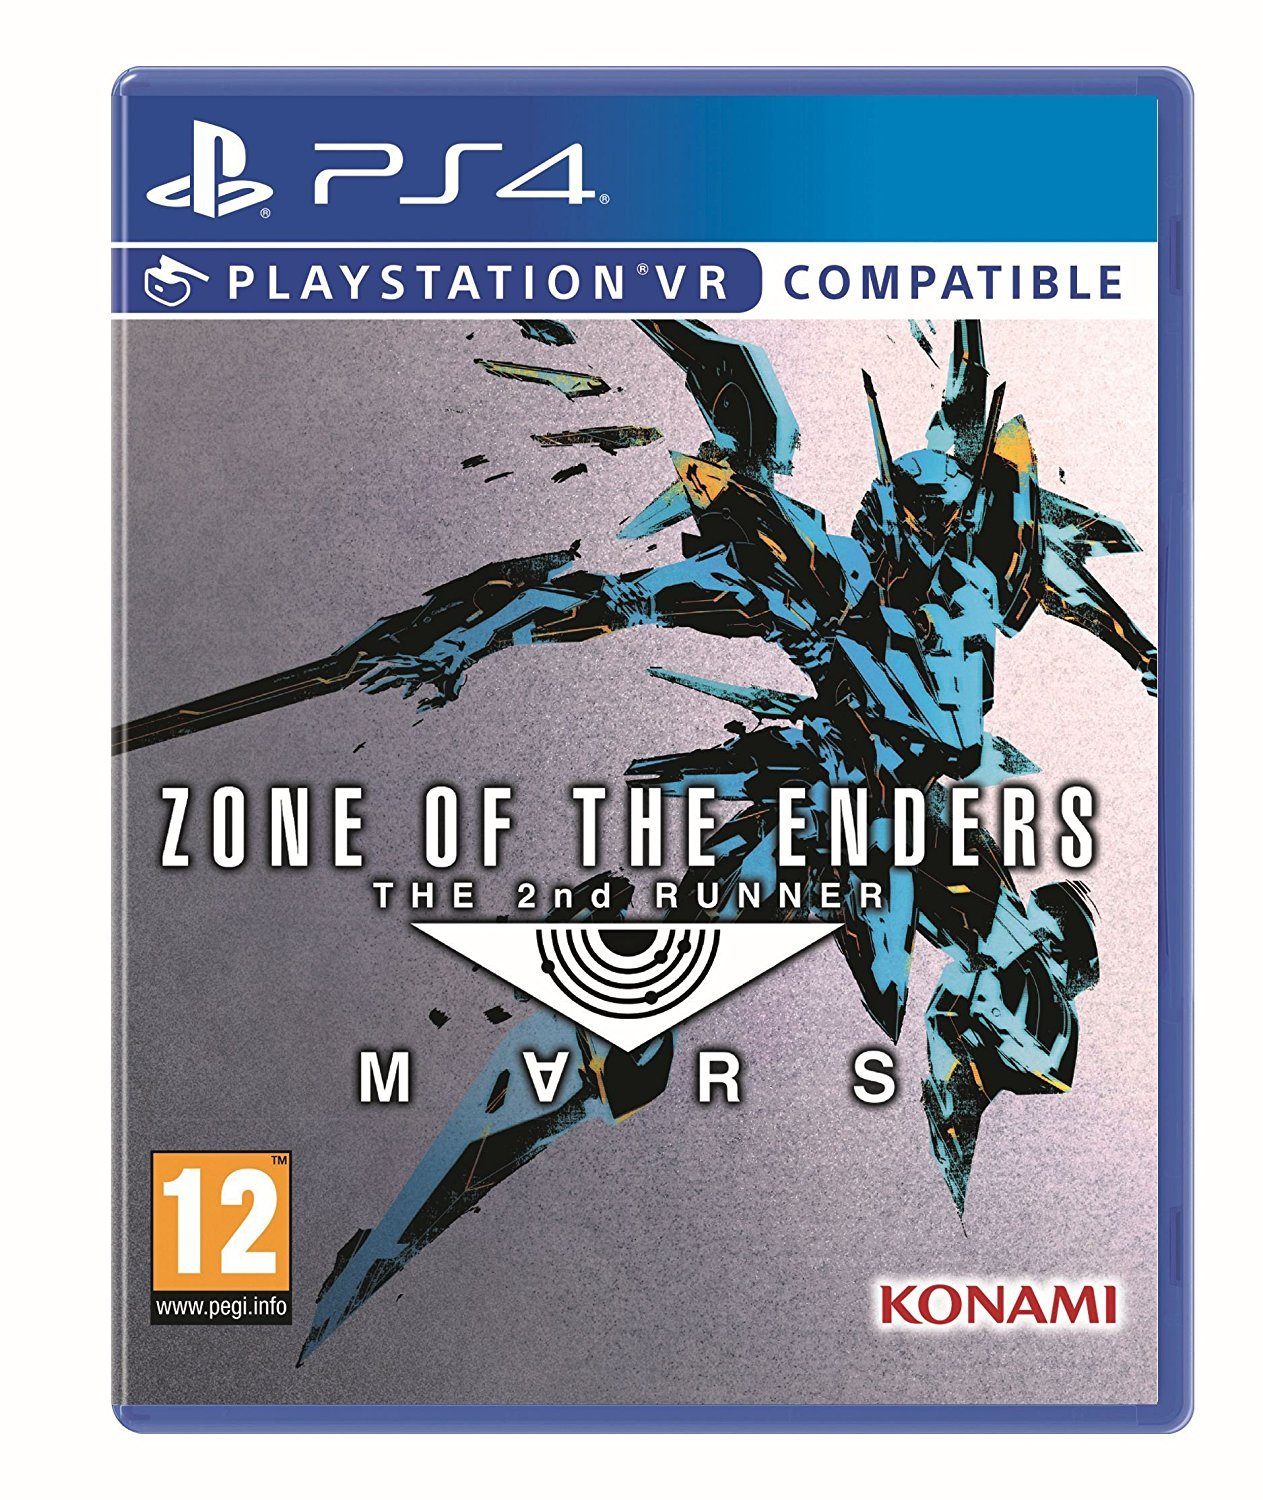 Zone of the Enders : The 2nd Runner M∀RS (disponible sur PC et PS4)